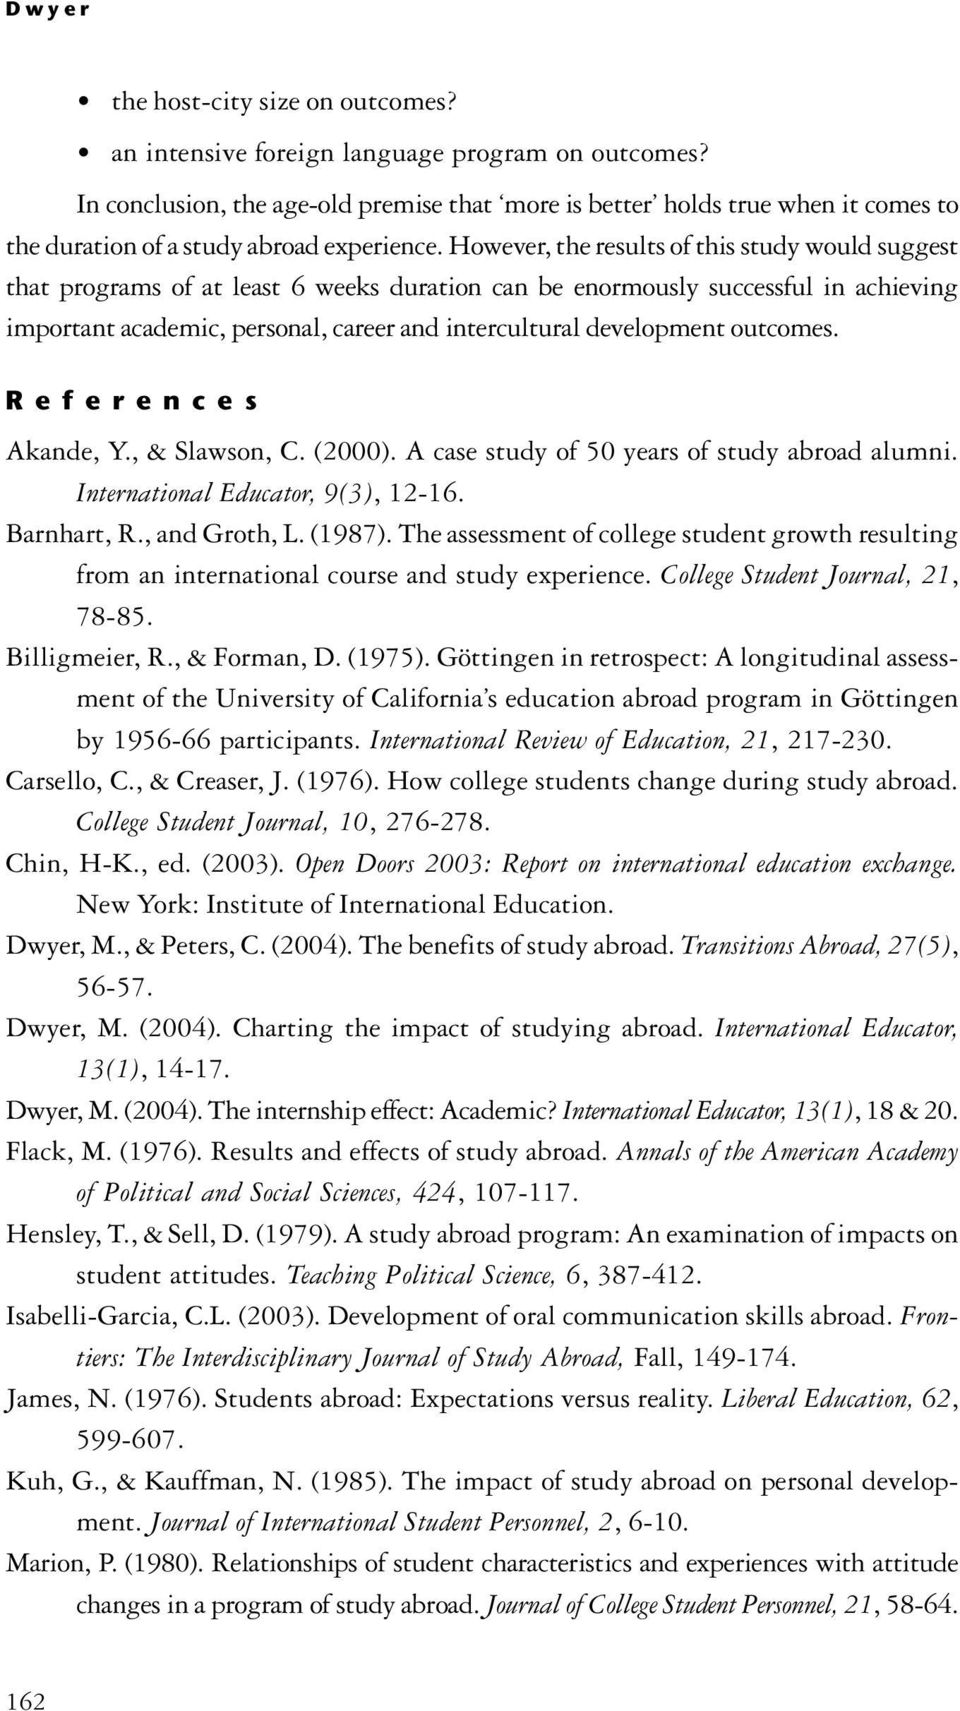 However, the results of this study would suggest that programs of at least 6 weeks duration can be enormously successful in achieving important academic, personal, career and intercultural